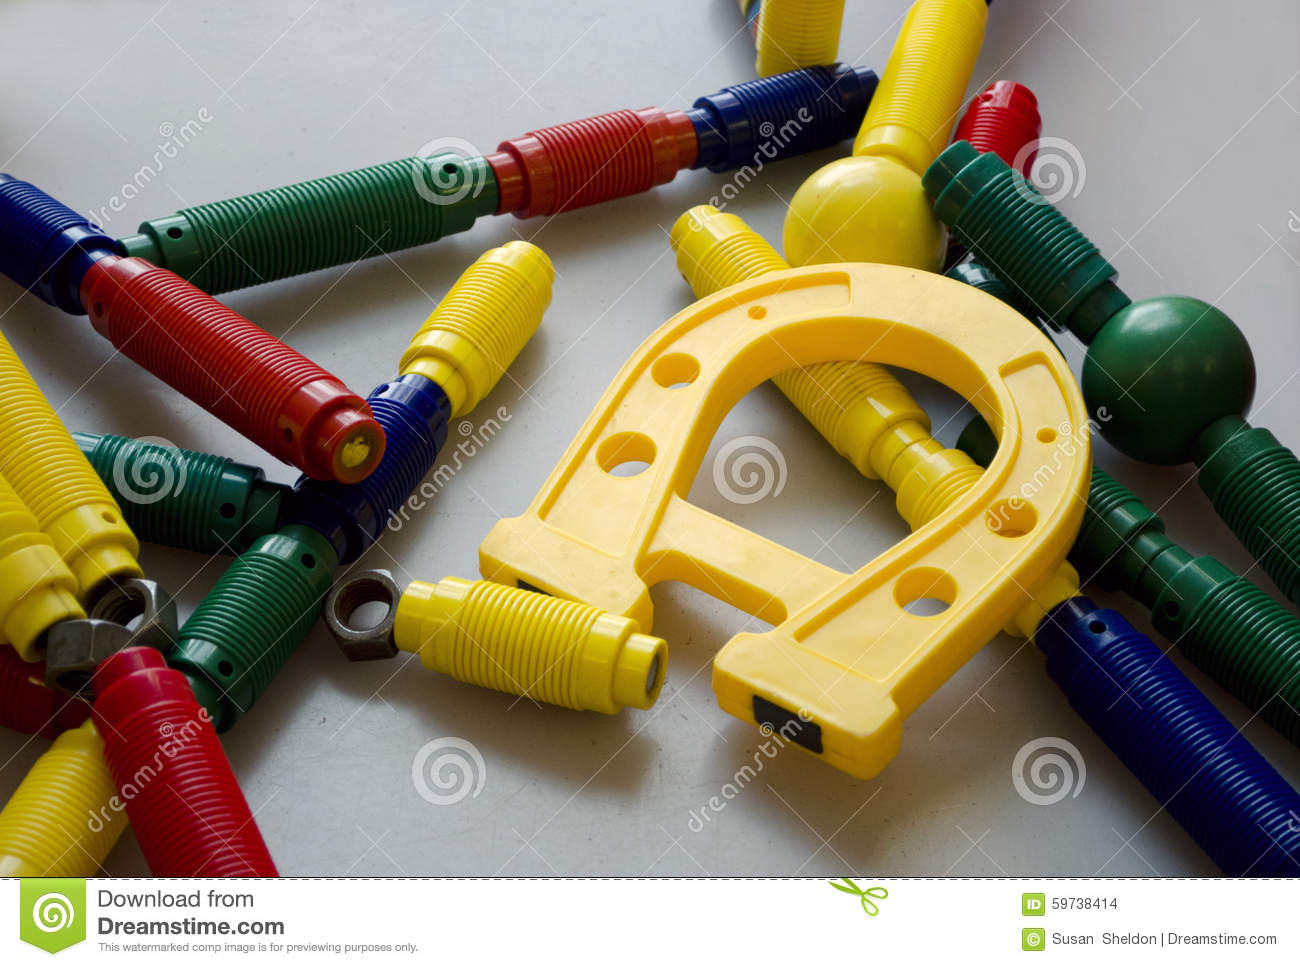 Colorful Magnetic Toys Stock Photo. Image Of Horse